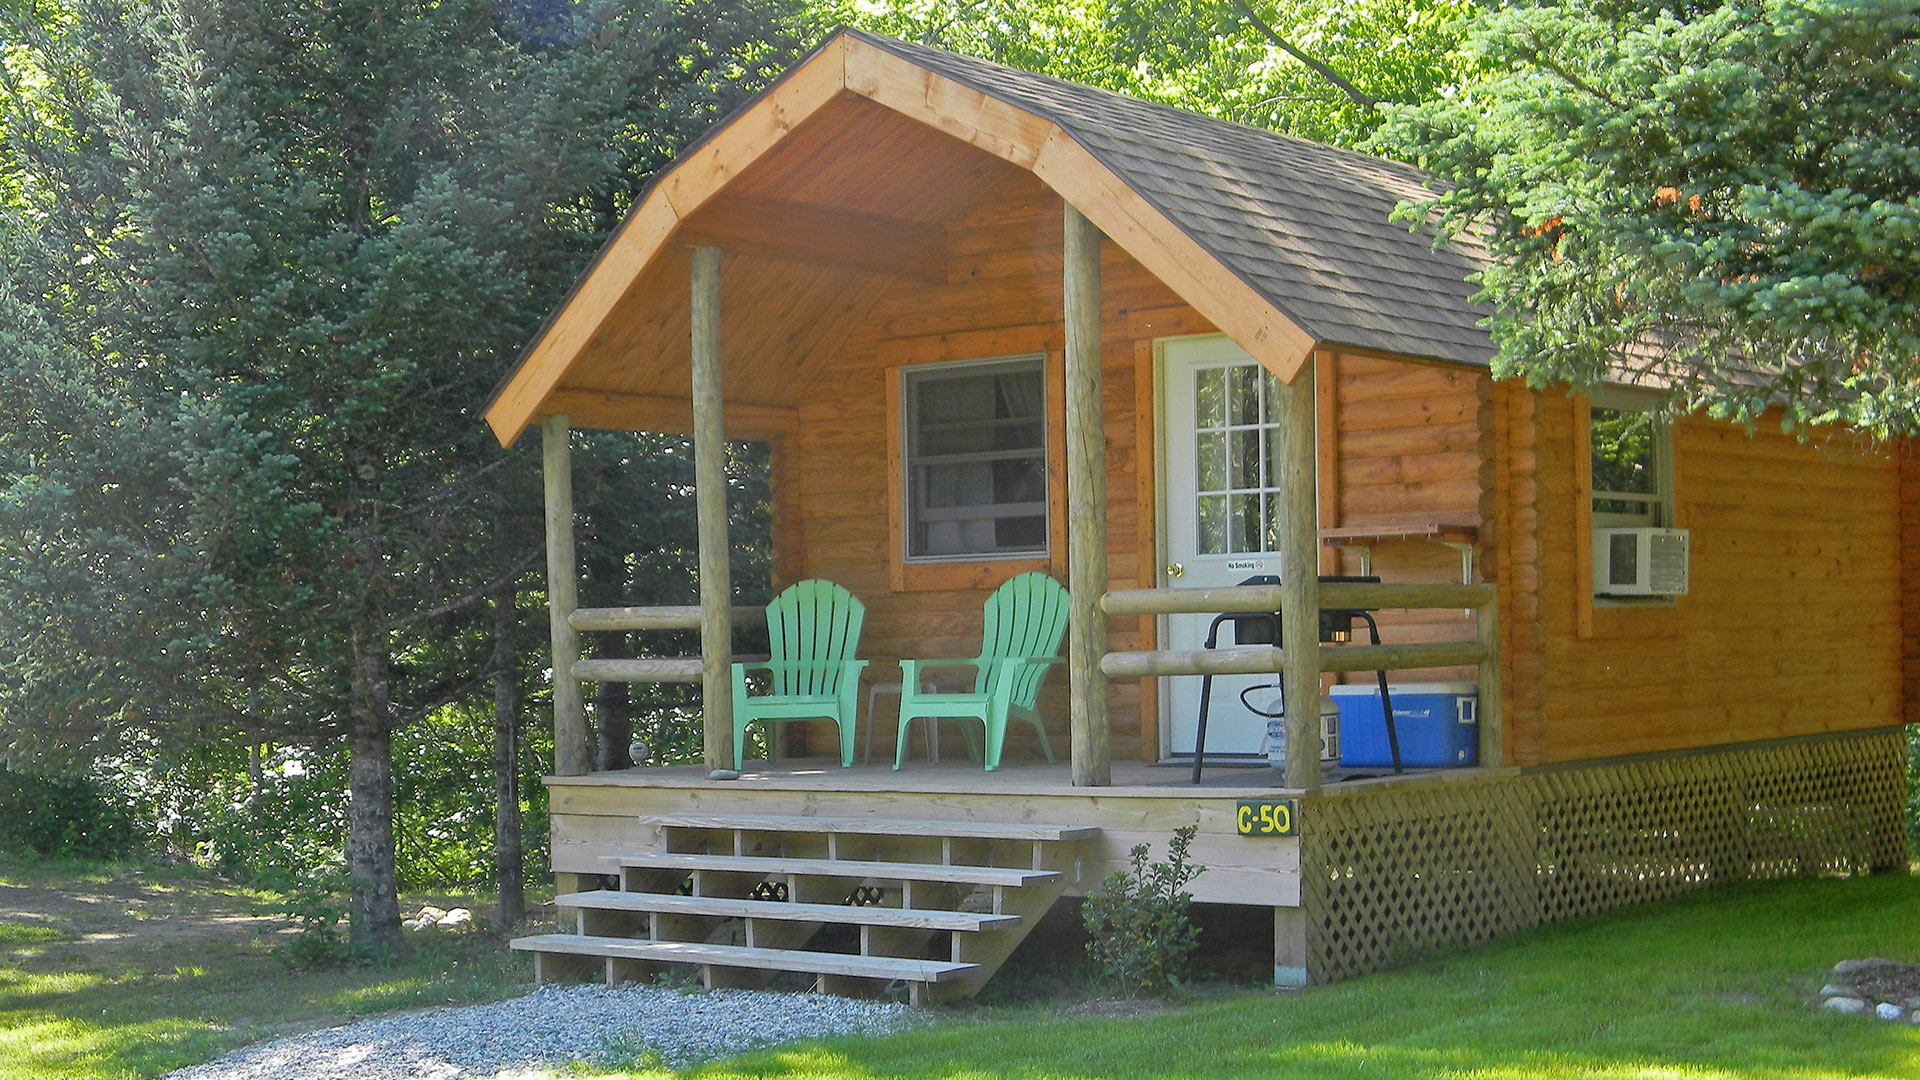 nh new in log cabins rentals cheap hampshire coast cottage lakes north rental cabin info conway drobek